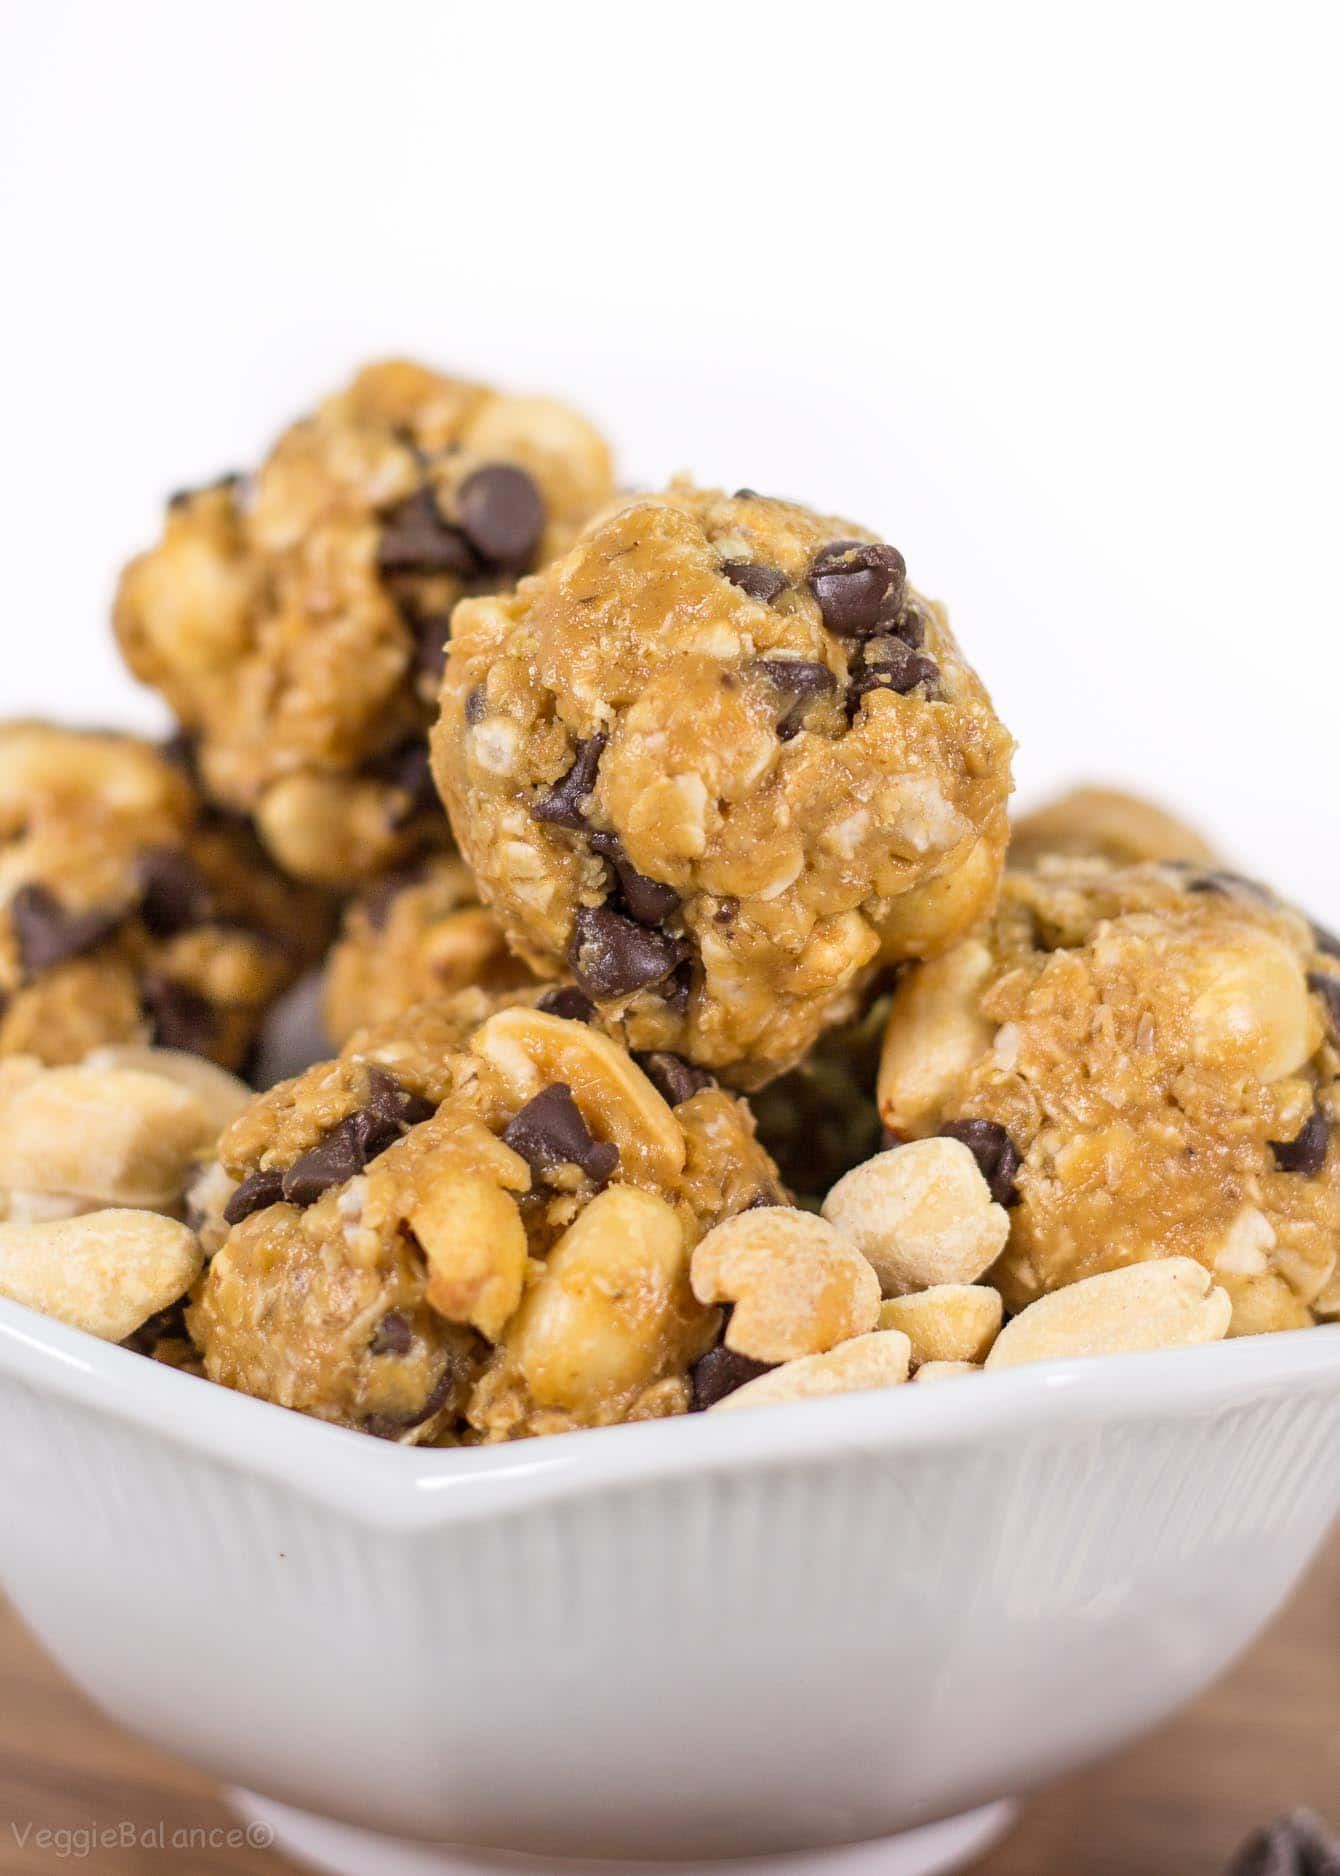 No Bake Peanut Butter Chocolate Breakfast Bites - Veggiebalance.com